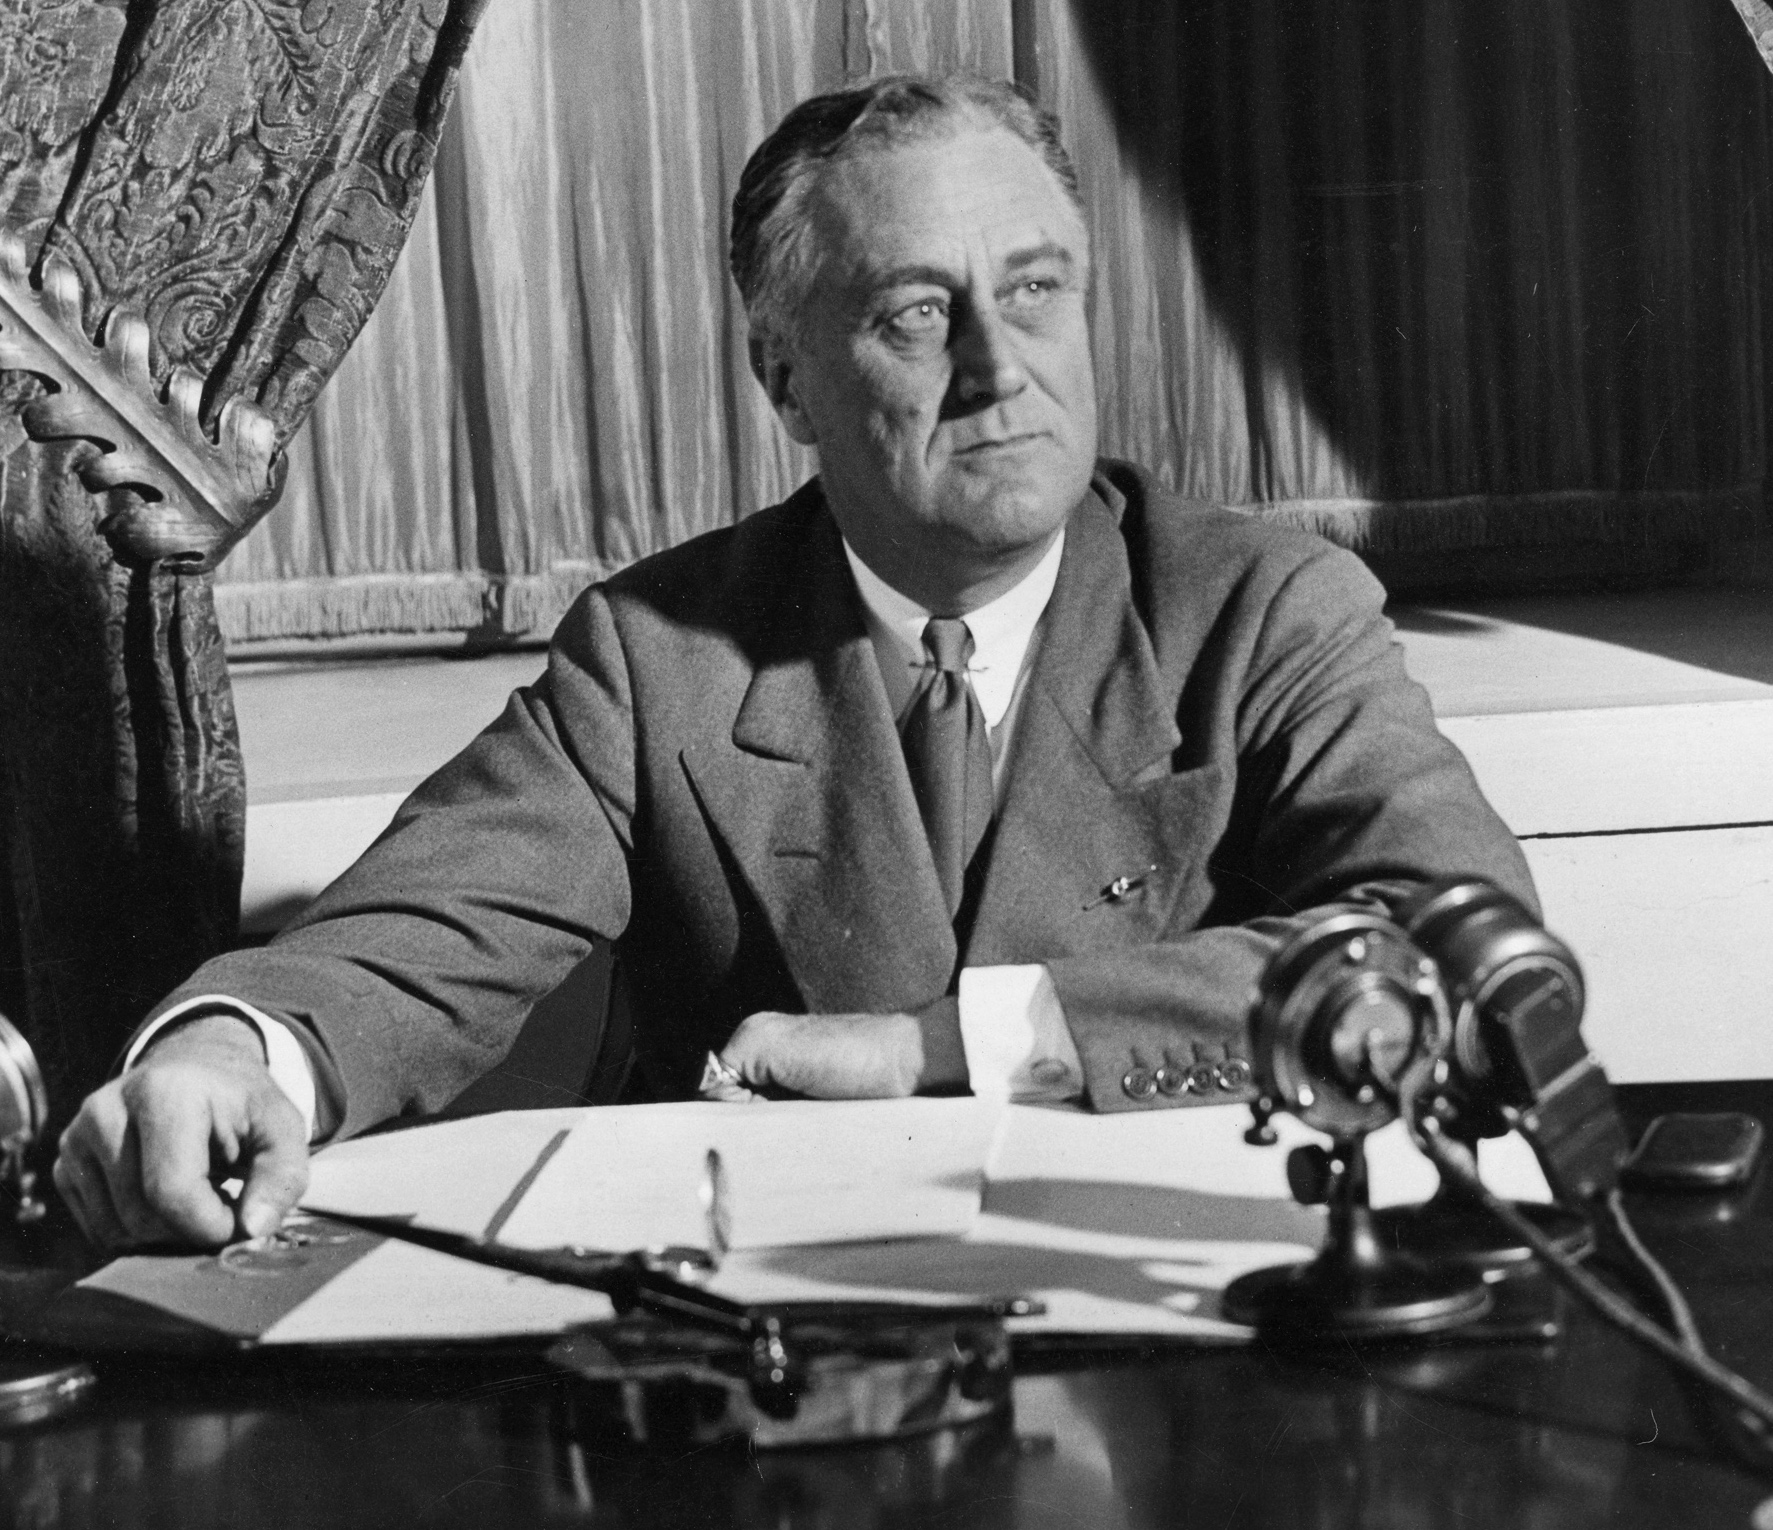 an examination of the political career of franklin delano roosevelt as the president of the united s Franklin d roosevelt: a political life [franklin d roosevelt -] on amazon com  discover amazon experience centers amazon expert home assessment  smart  the accidental president: harry s truman and the four months that   the book also provides good insight on the us non involvement in the early.